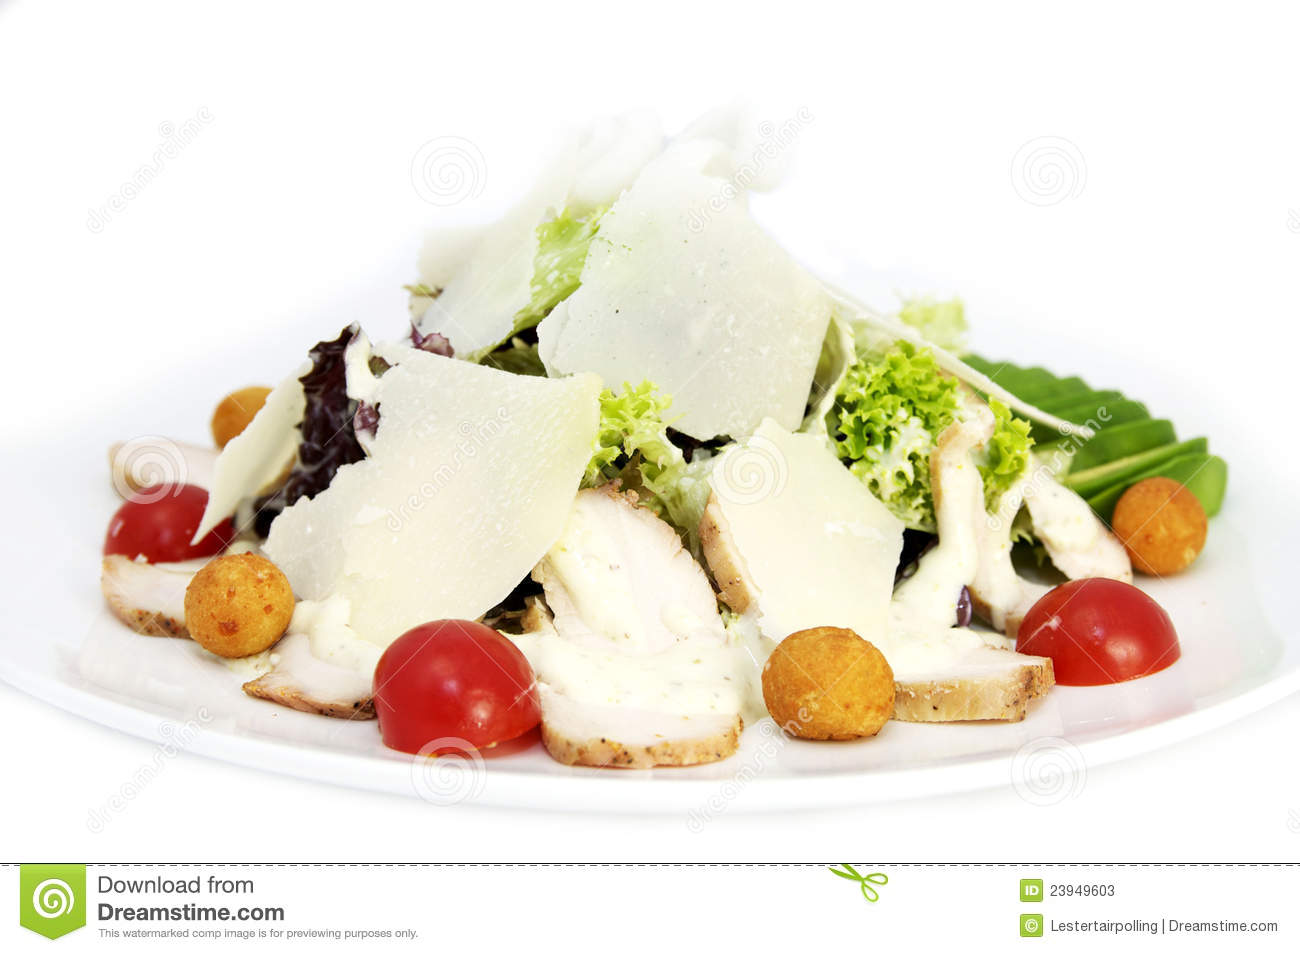 Salad with meat and cheese